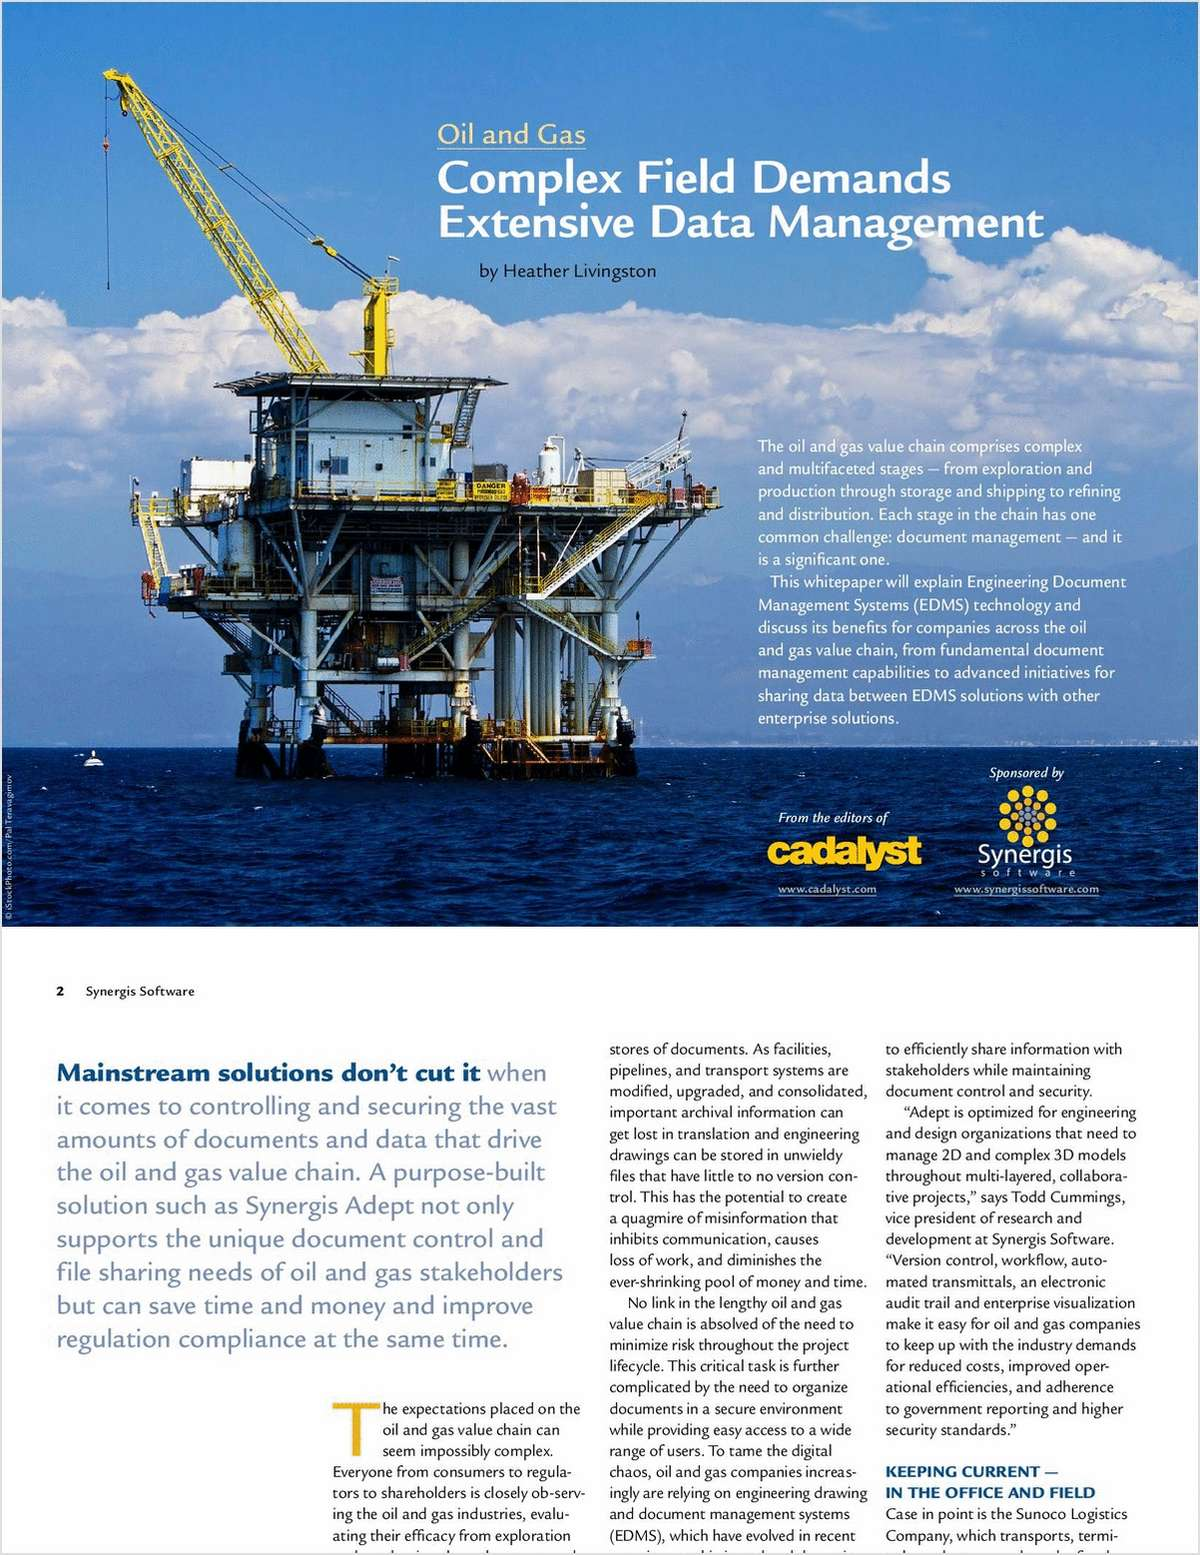 Tackling Engineering Document Management Chaos in the Oil & Gas Industry